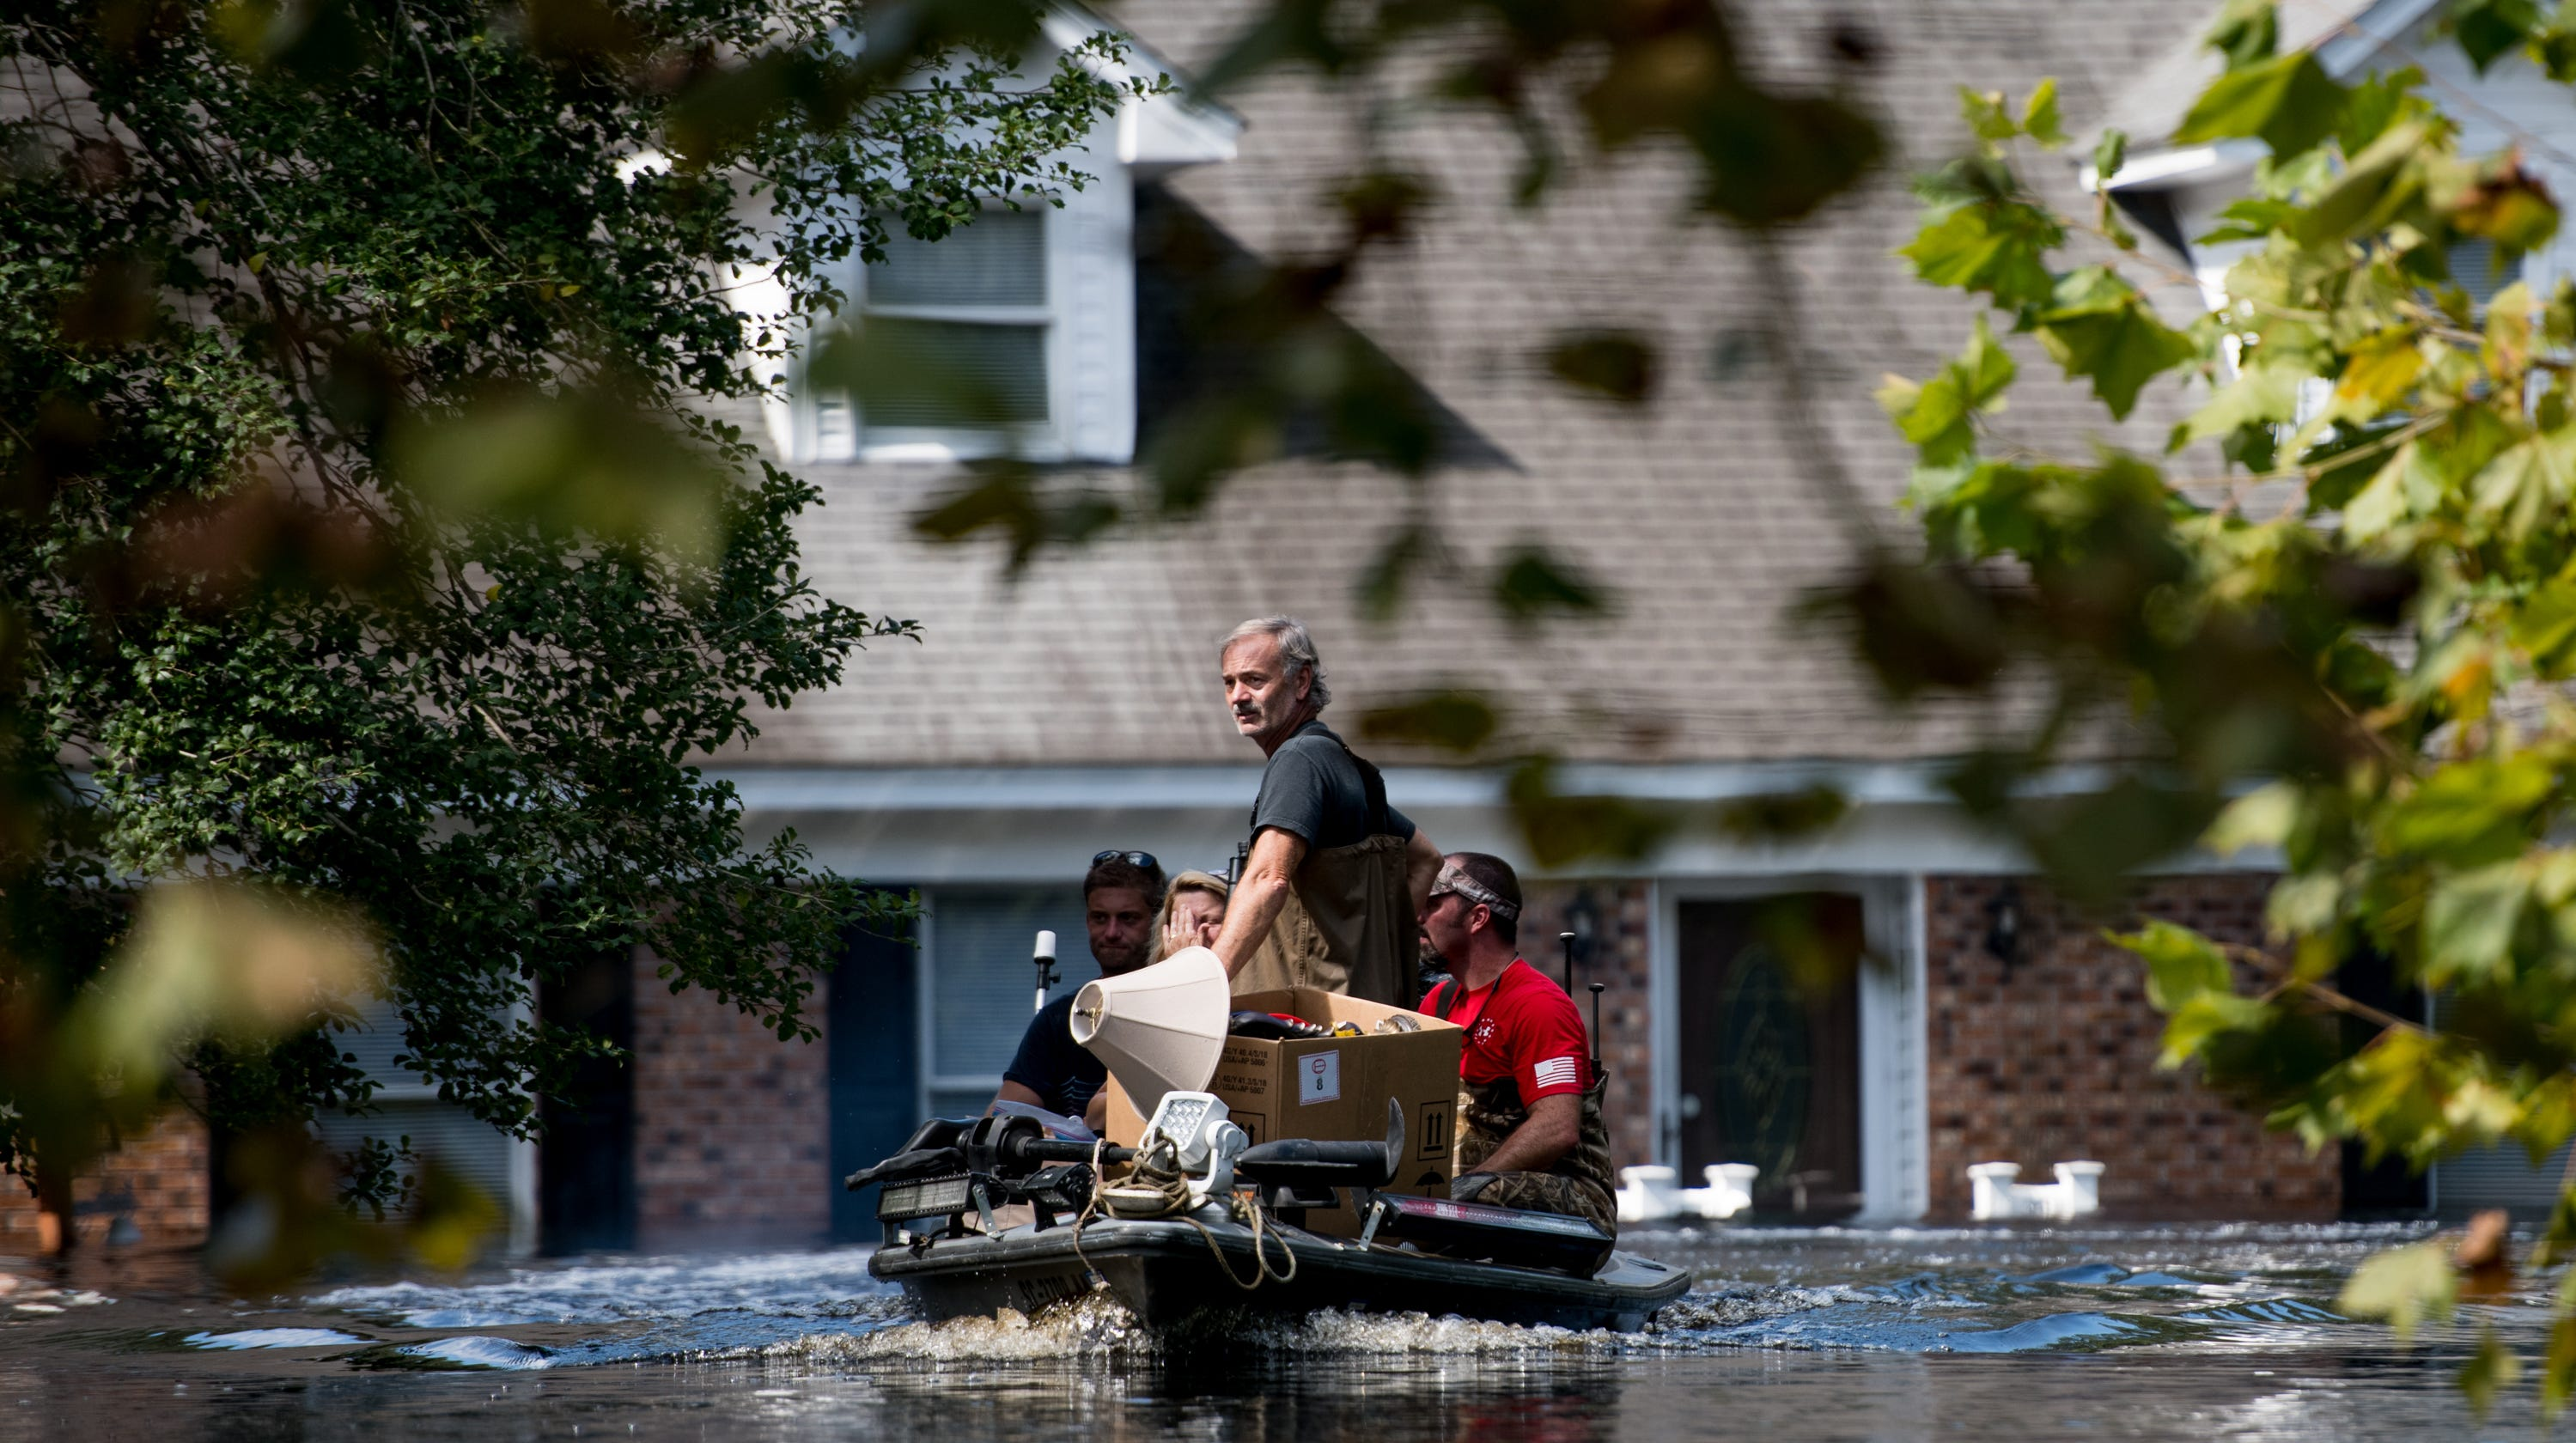 People use a boat to rescue valuables from a home inundated by floodwaters caused by Hurricane Florence near the Waccamaw River on September 23, 2018 in Conway, South Carolina.